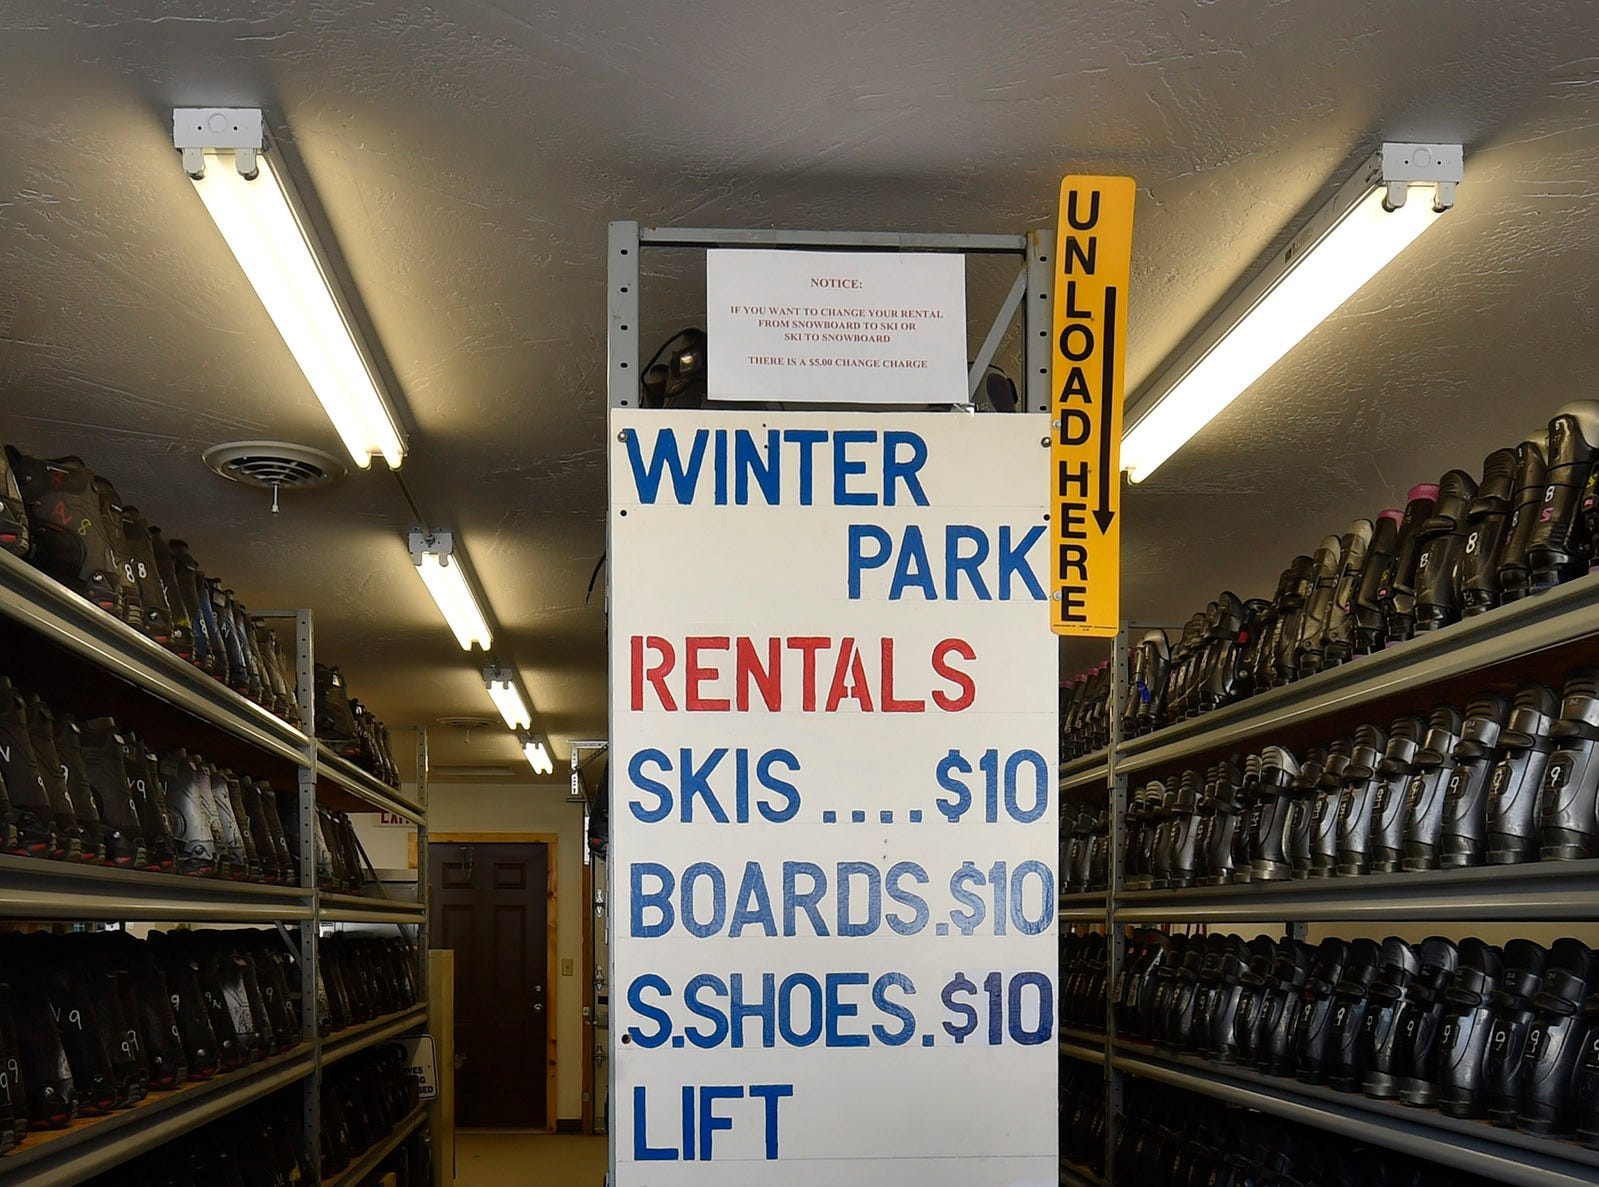 The cost of $10 equipment rental included boots, helmet and poles at Winter Park, Kewaunee. Tina M. Gohr/USA TODAY NETWORK-Wisconsin